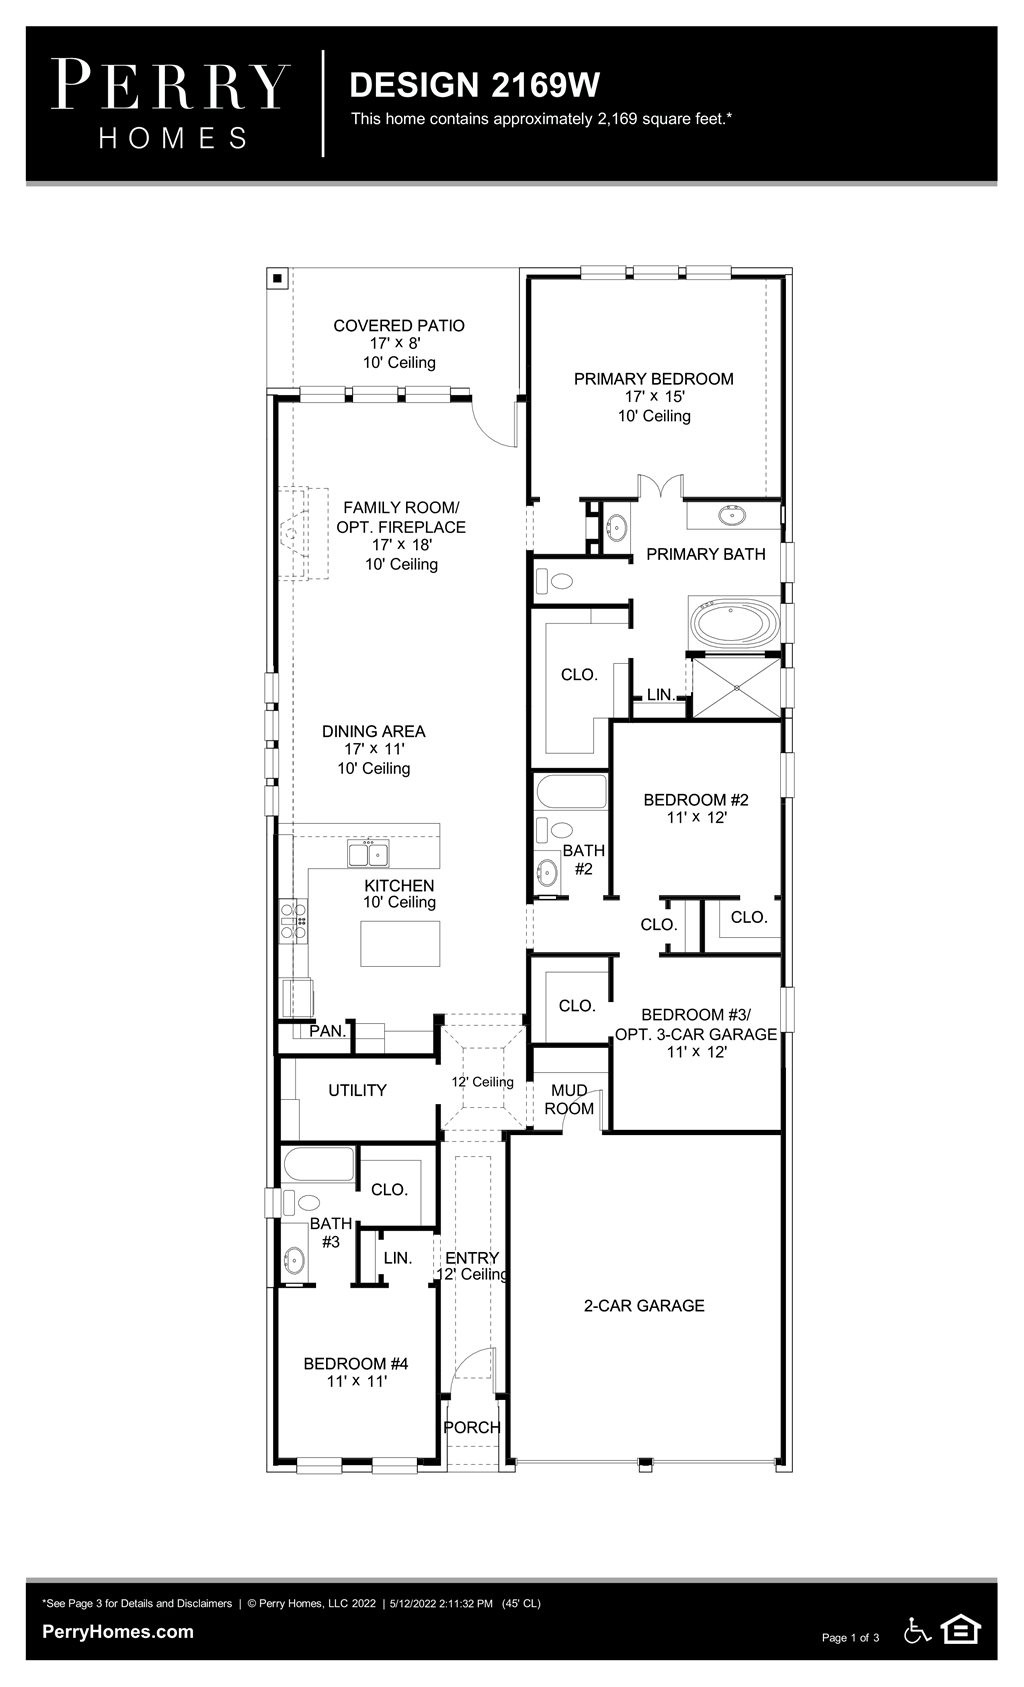 Floor Plan for 2169W